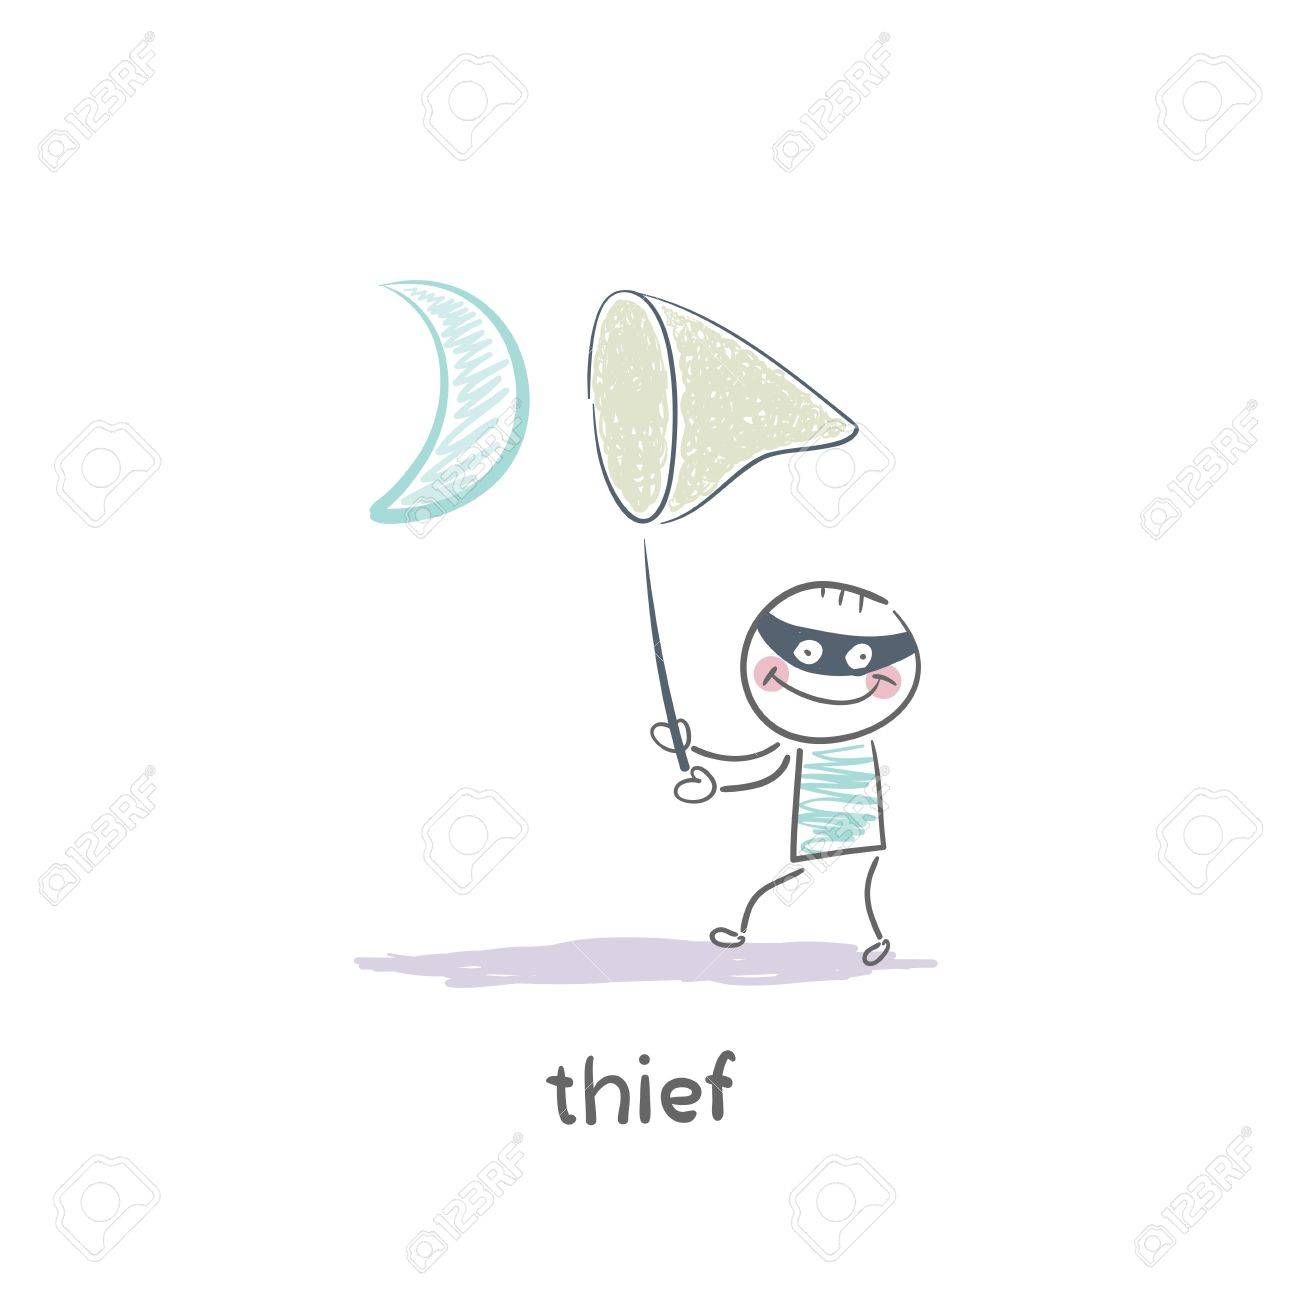 thief Stock Vector - 19150890